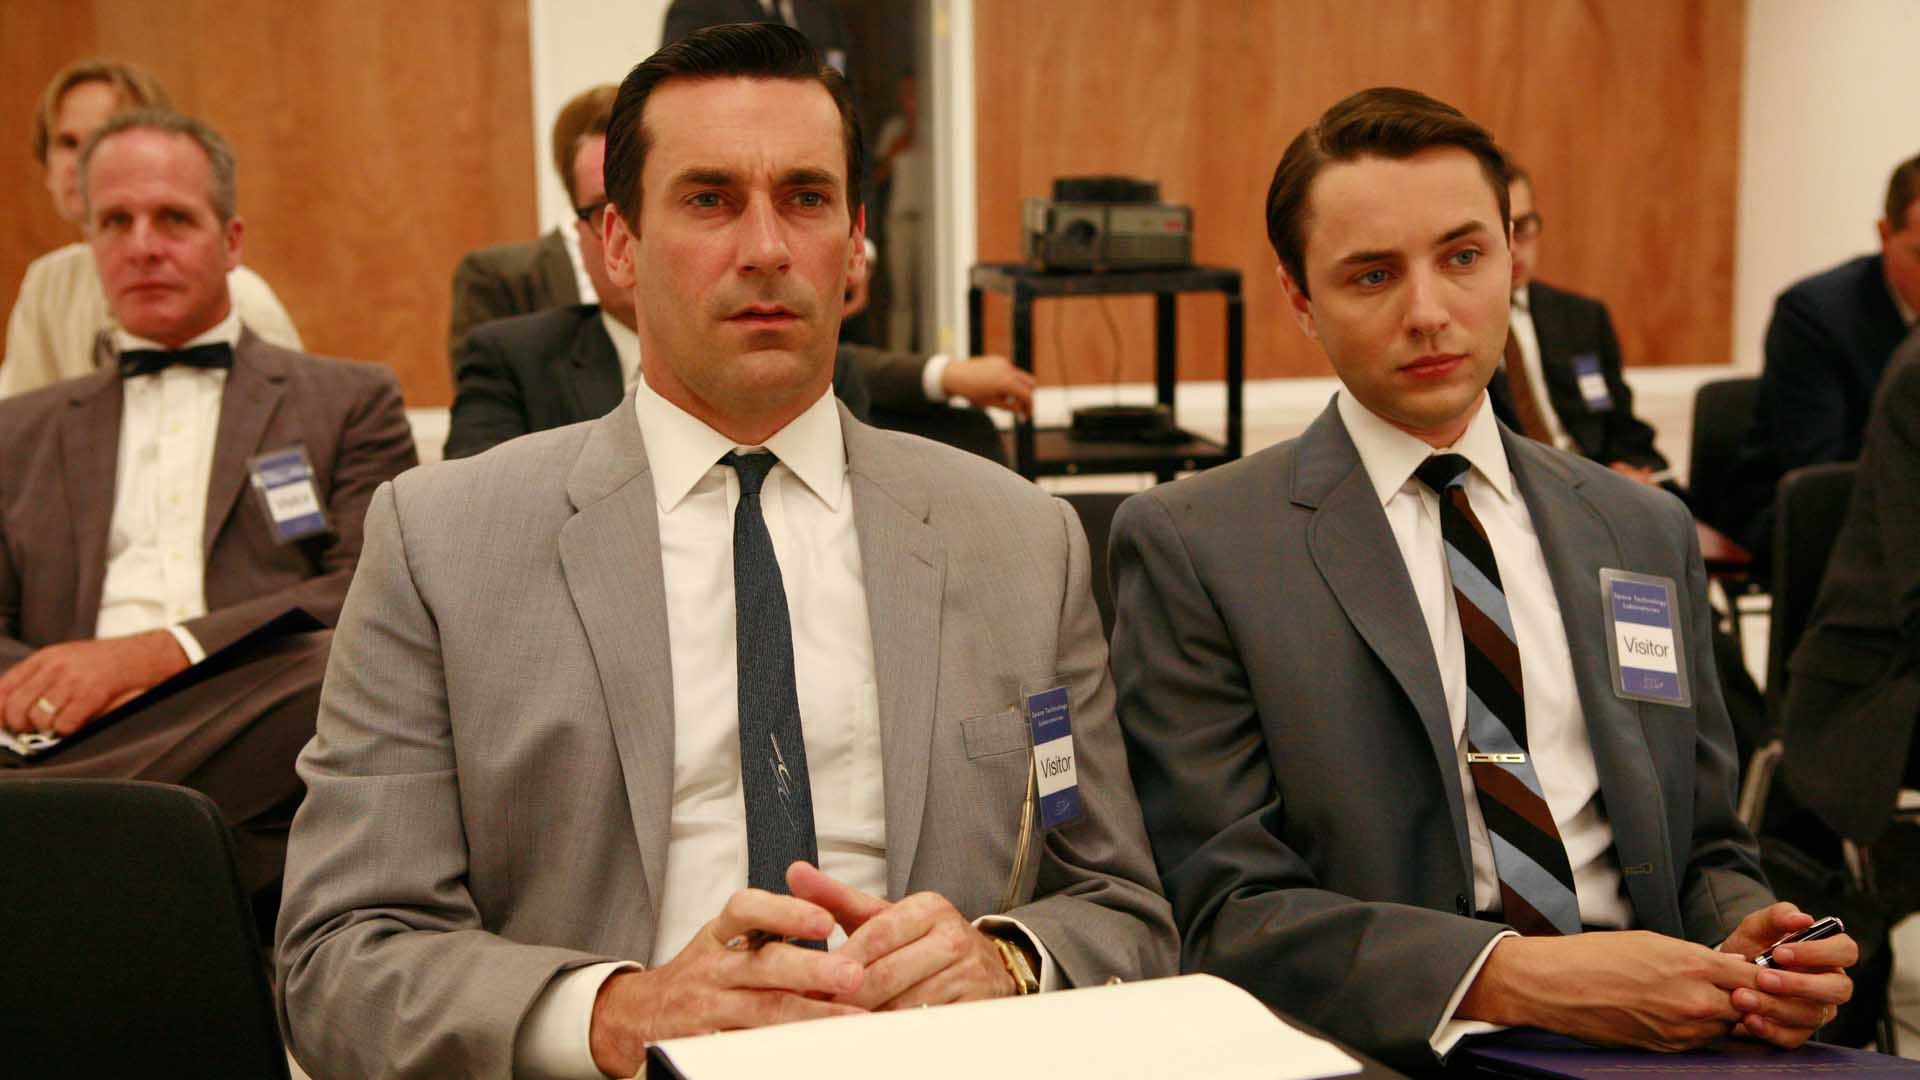 Inside Episode 211 Mad Men: The Jet Set